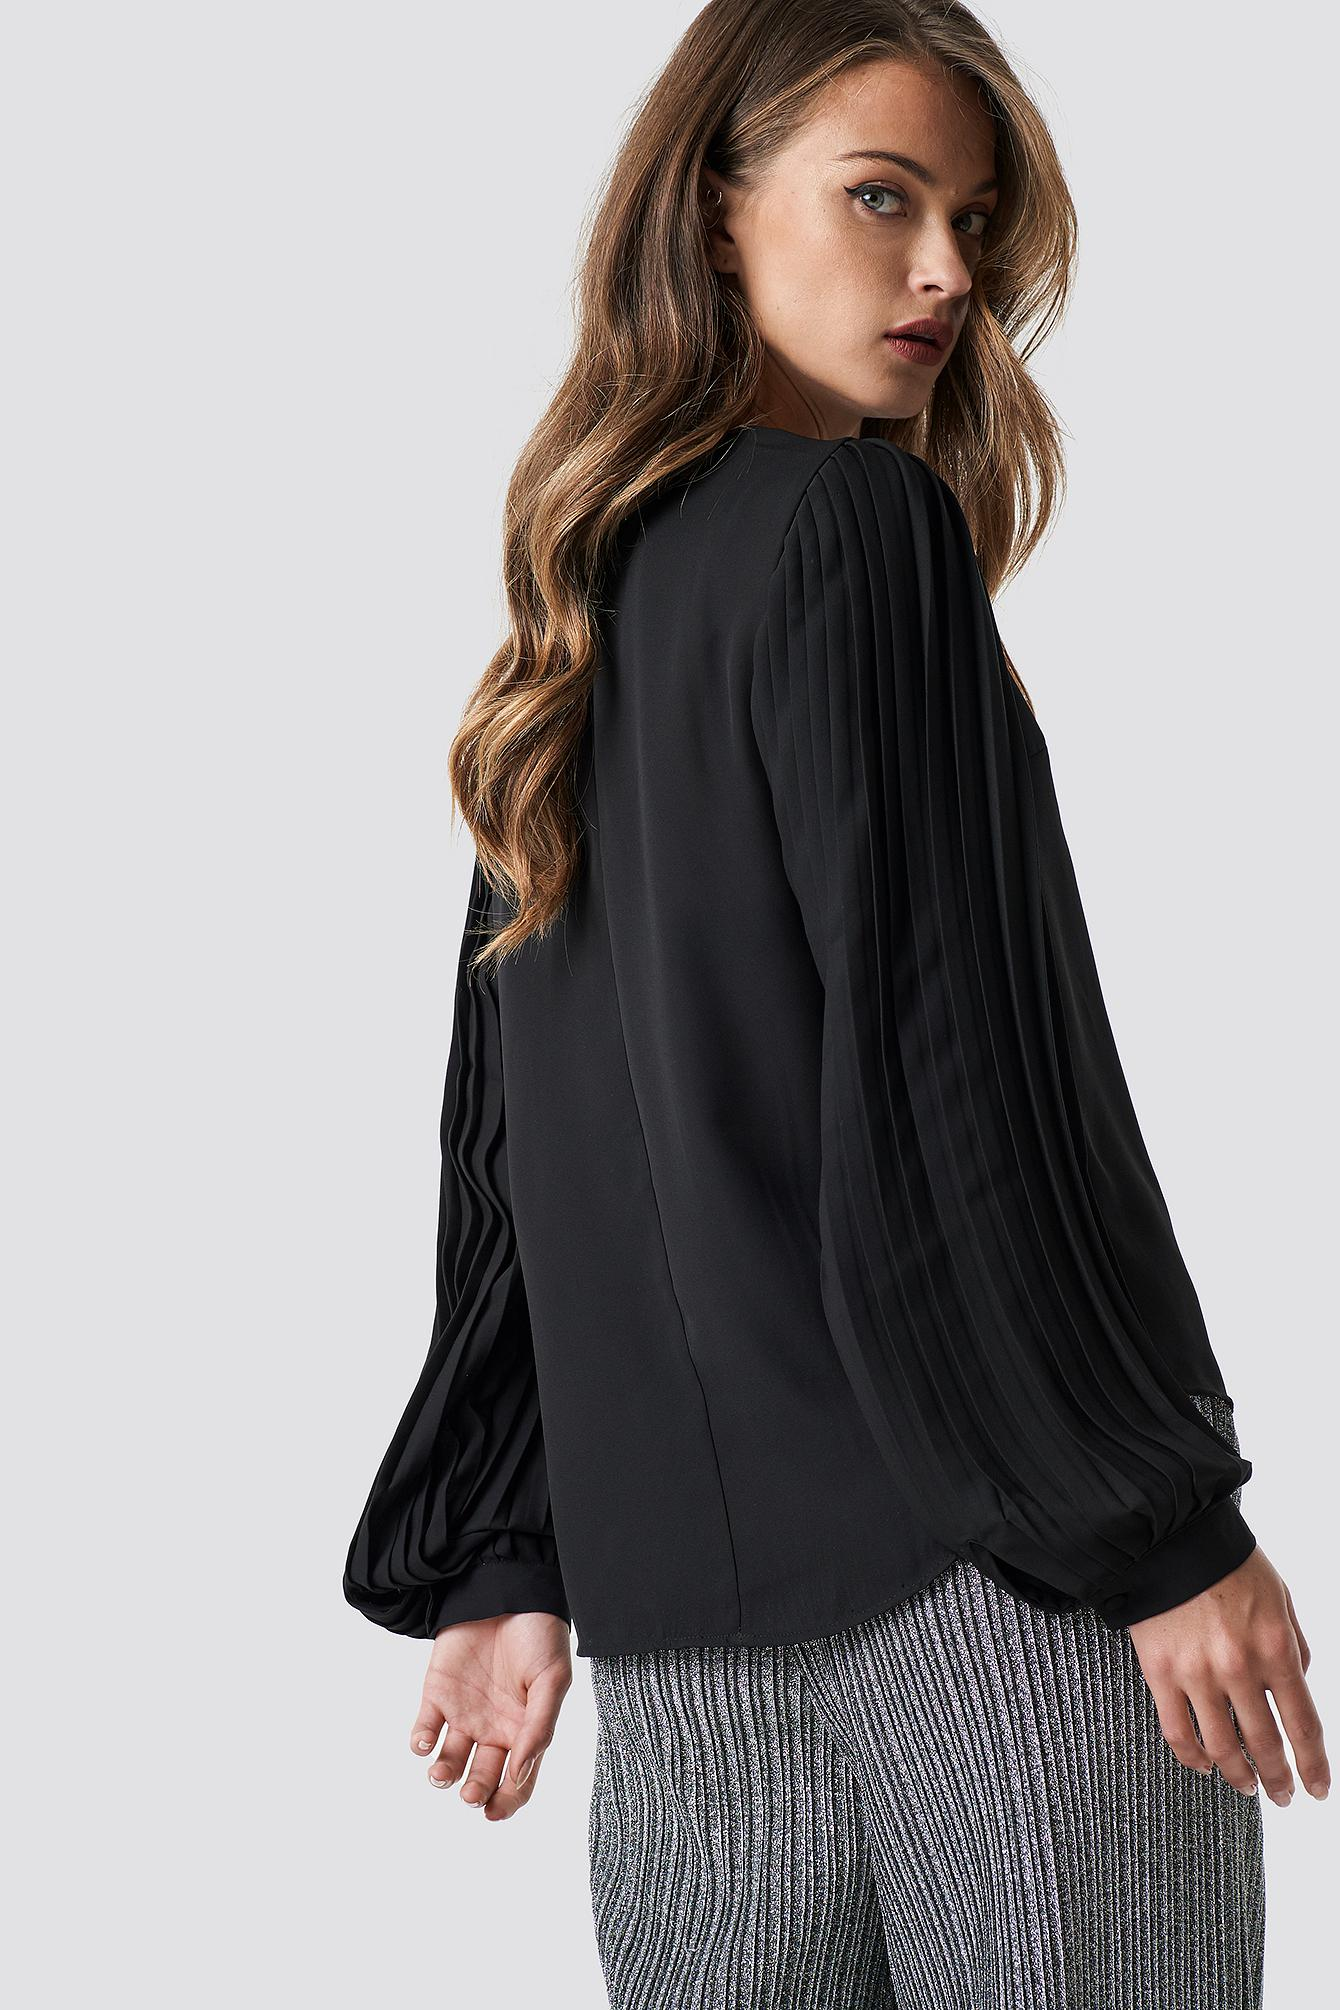 d3533bfda52 Trendyol - Pleated Detailed Blouse Black - Lyst. View fullscreen